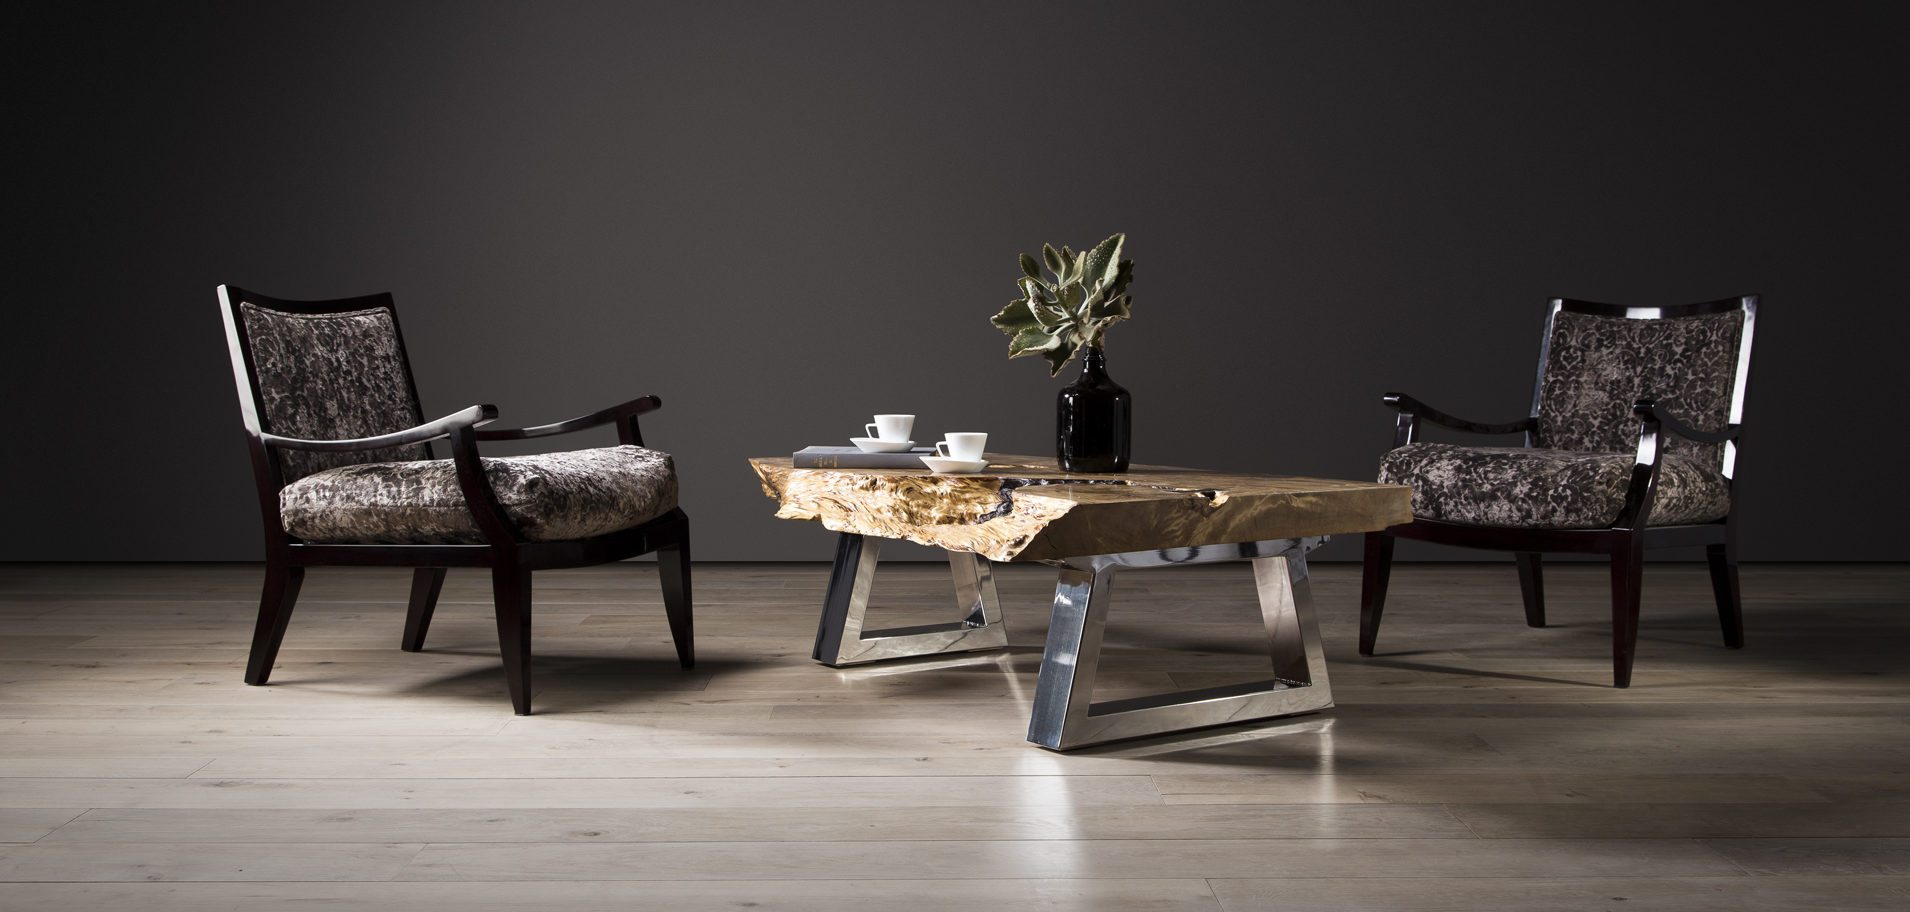 Lansdowne Coffee Table with Ferreira Occasional Chairs